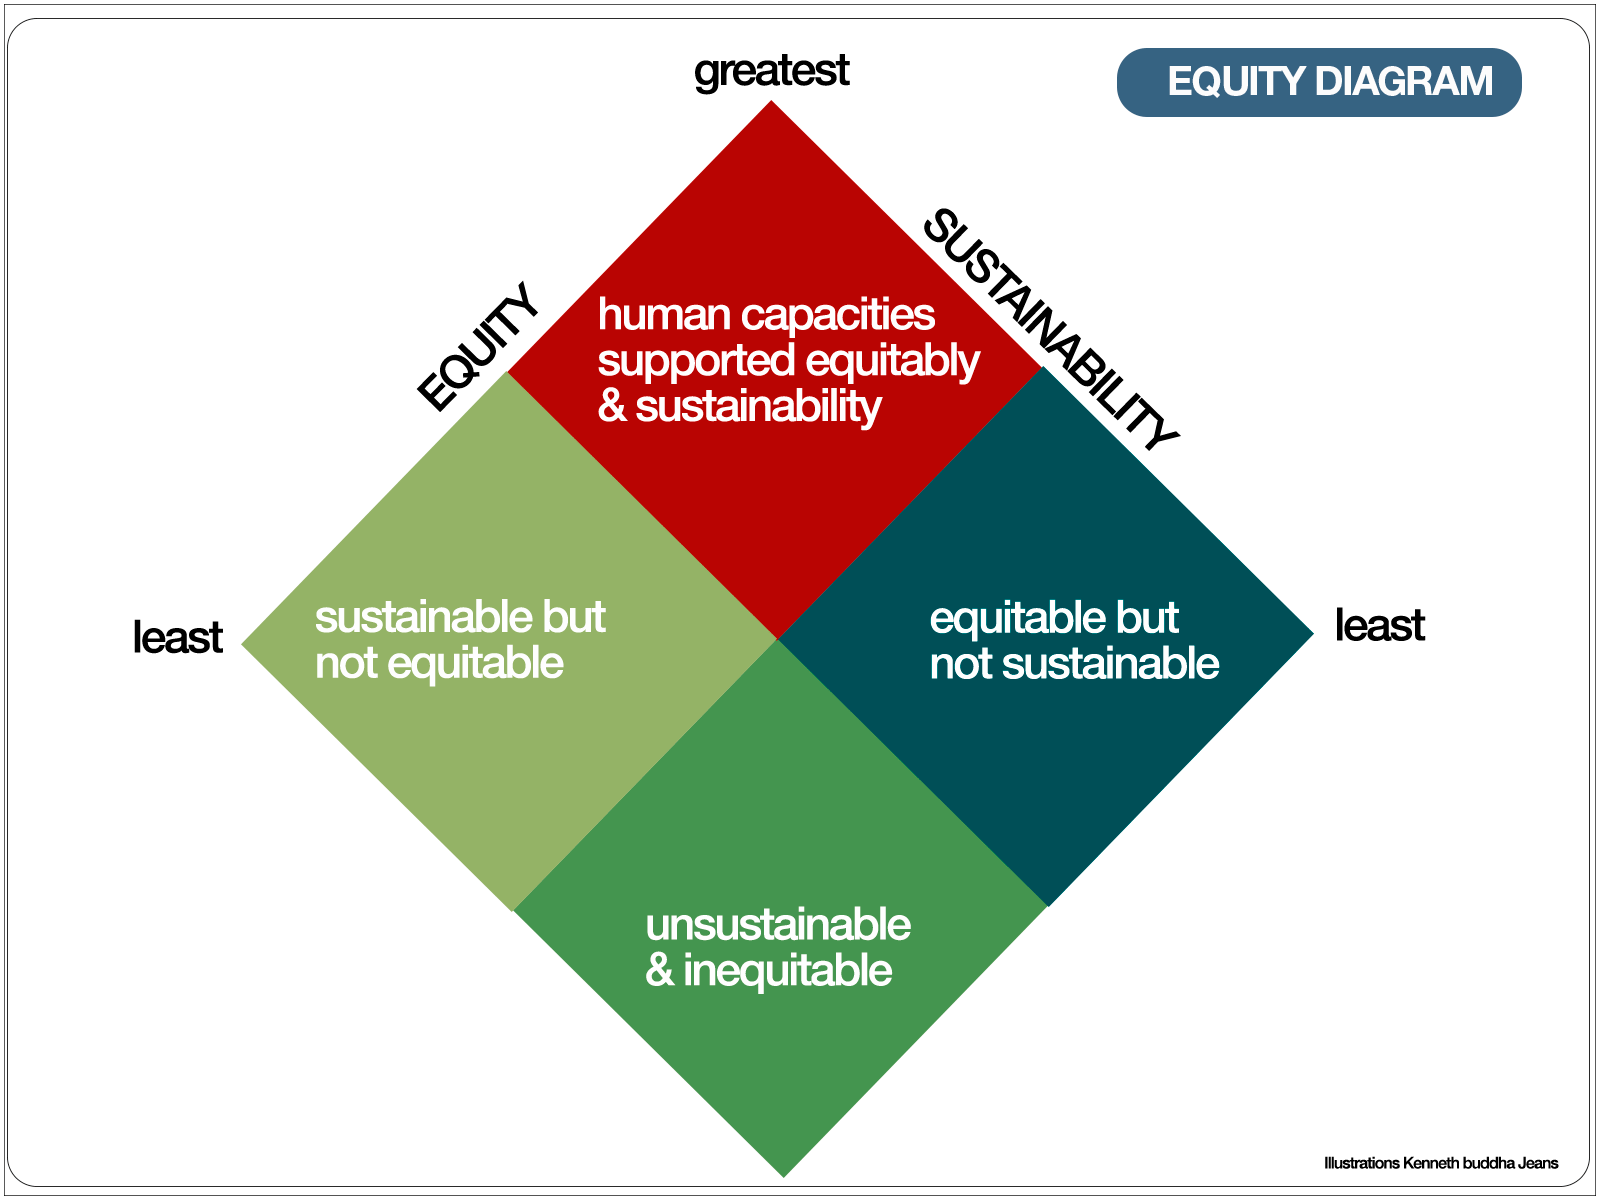 equity-sustainable-1600-1200